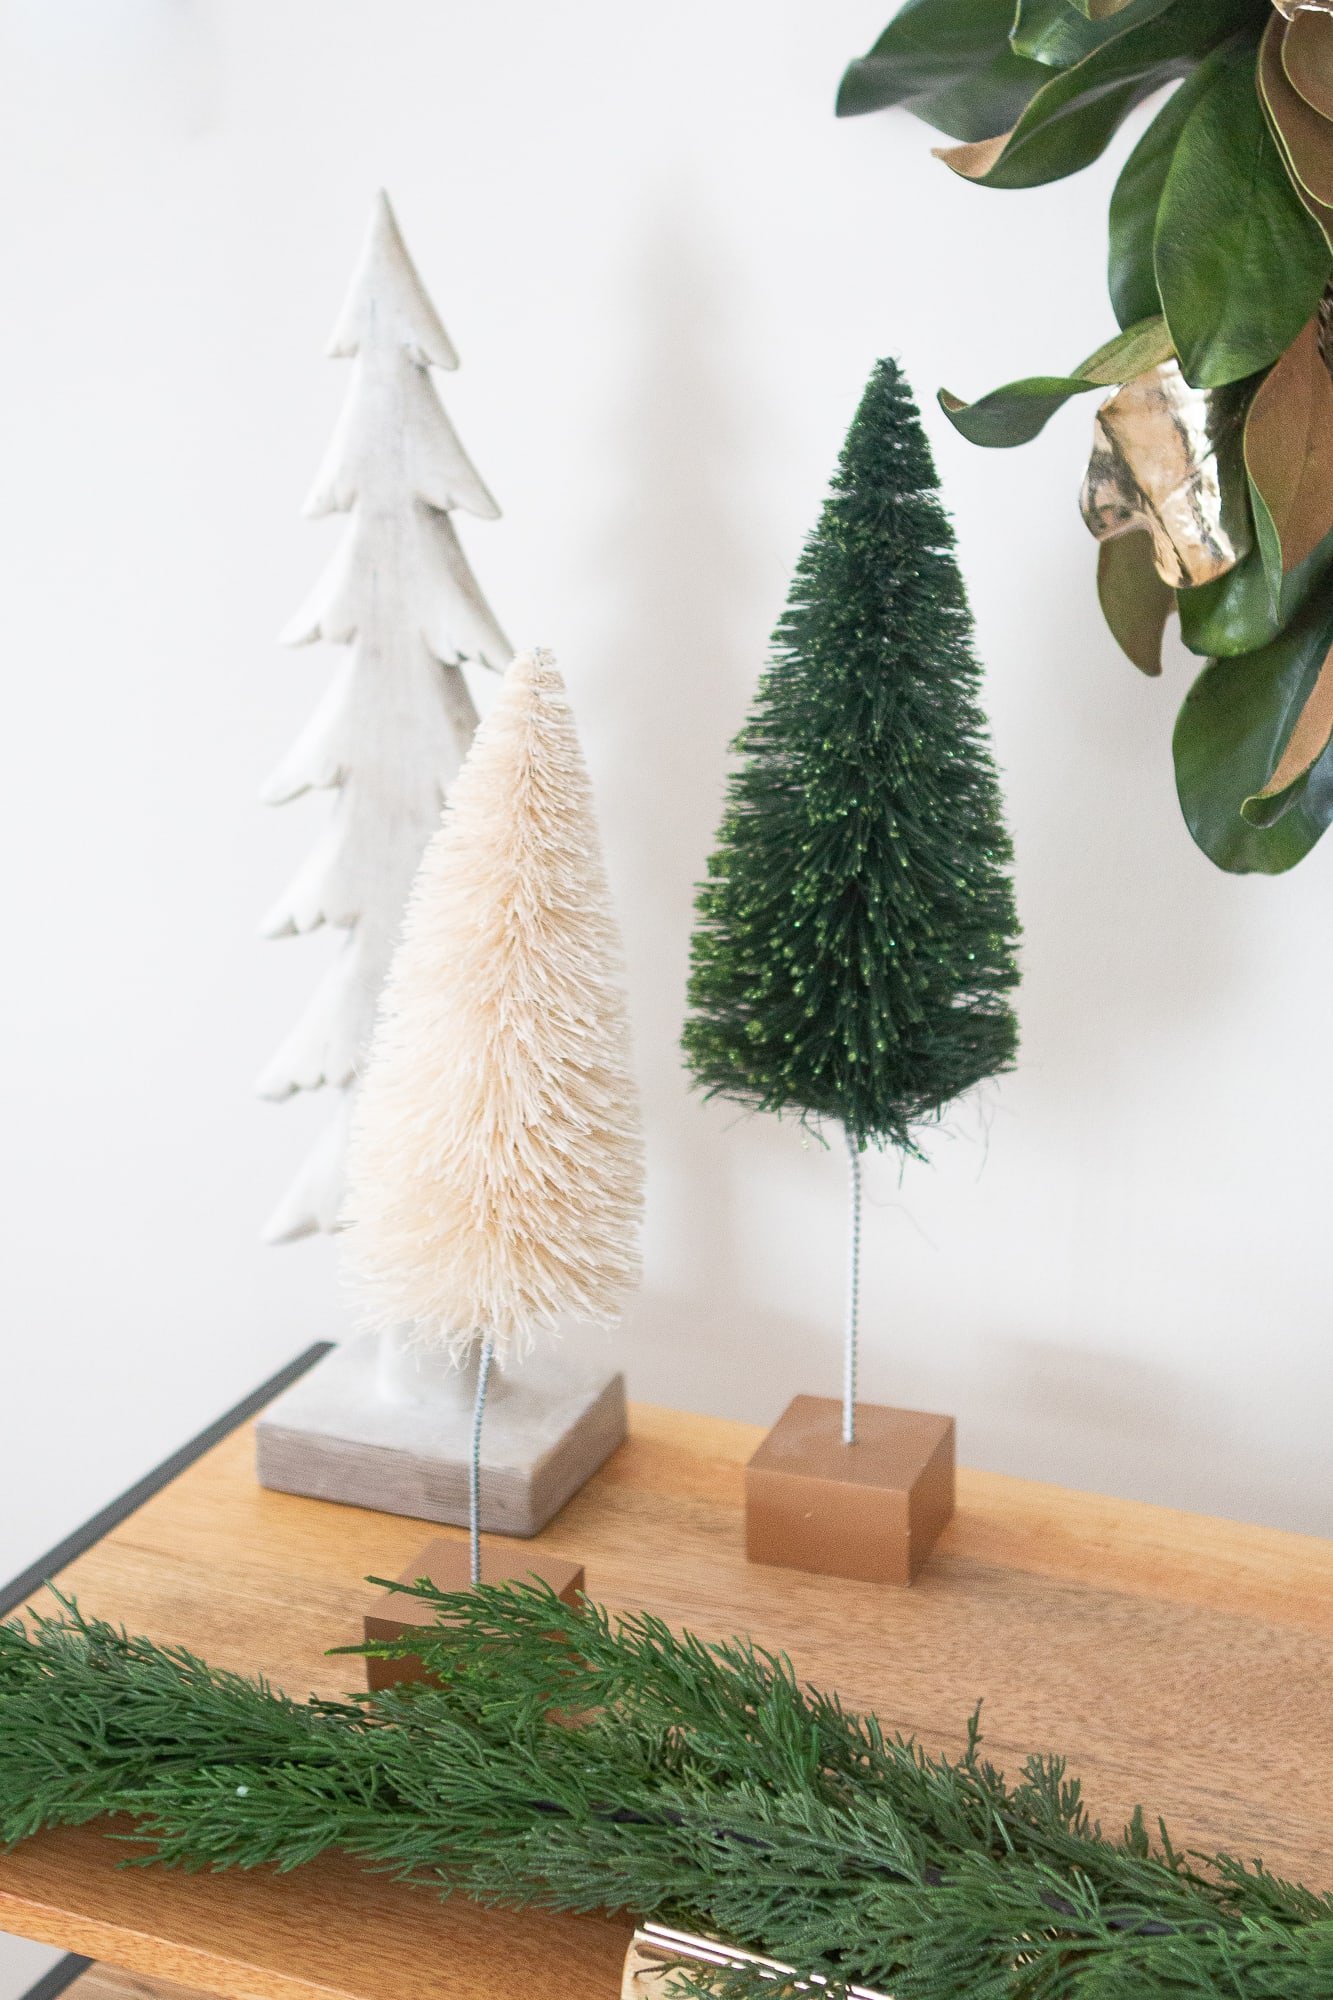 Group holiday decor in threes